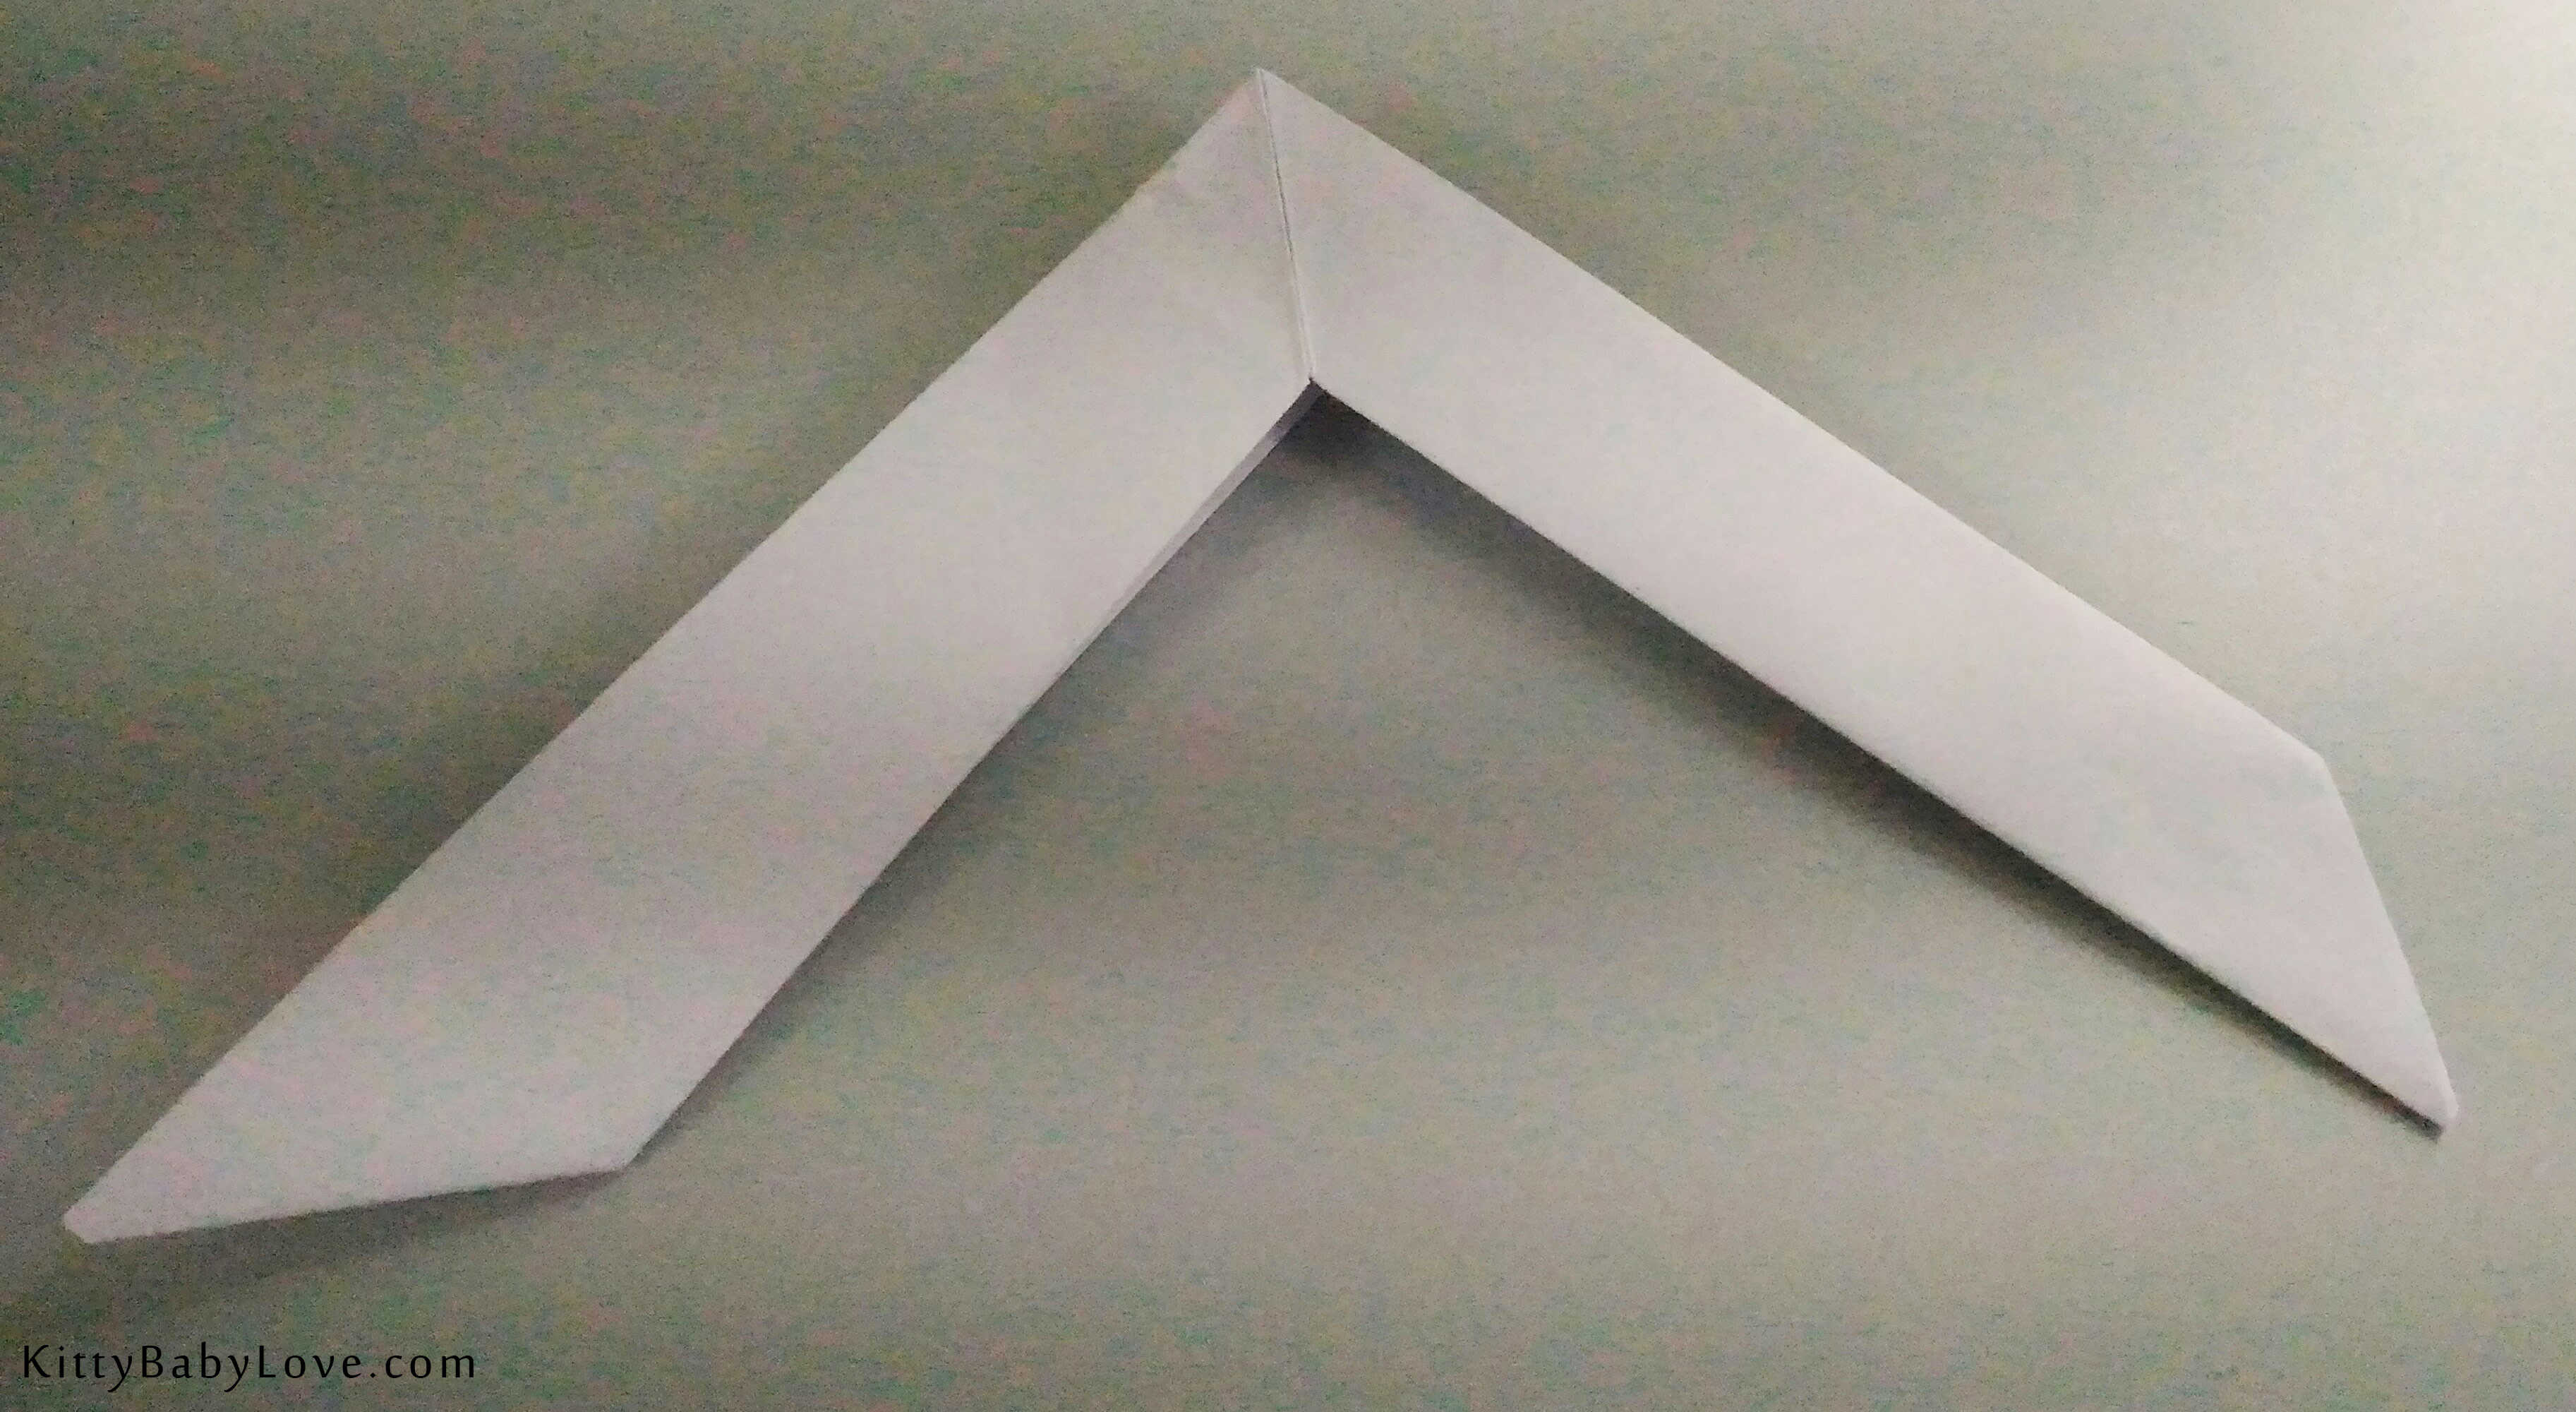 How to make origami boomerang that comes back to you